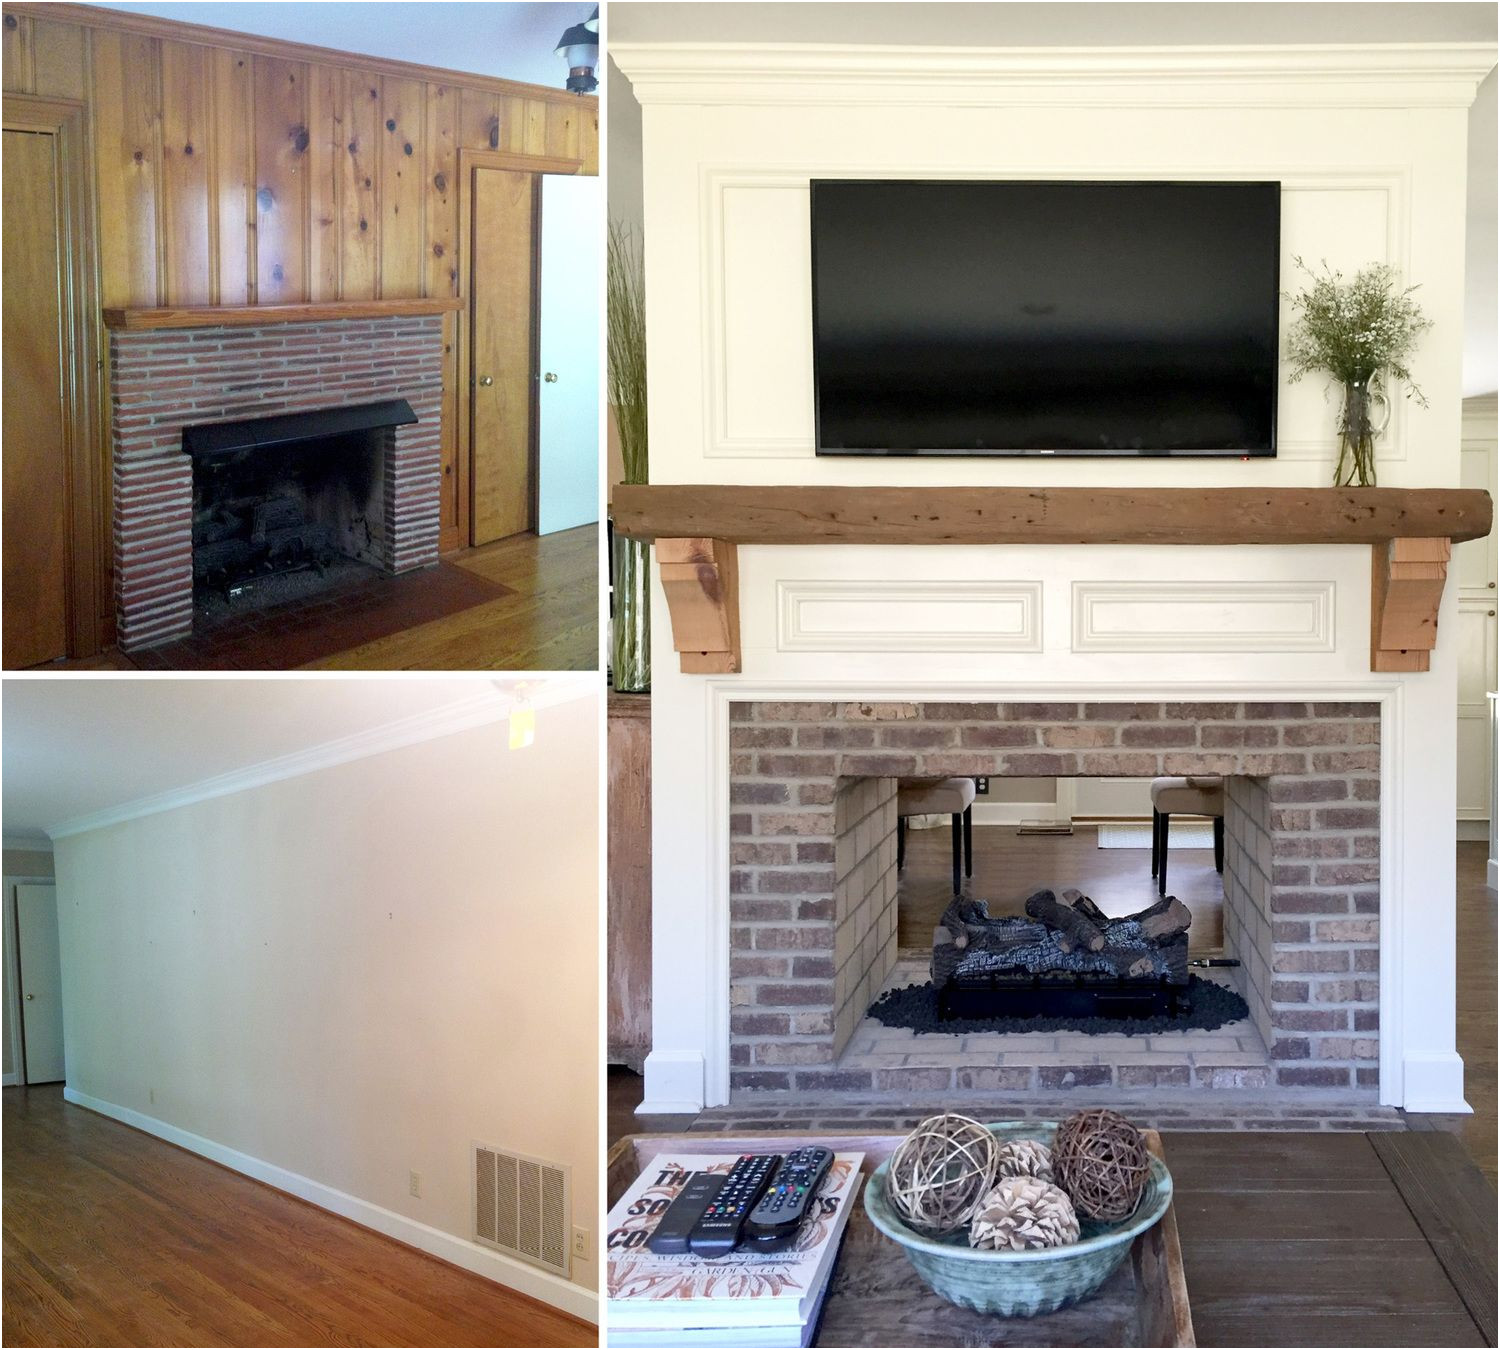 Fireplace Remodeling Inspirational Fireplace Renovation Converting A Single Sided Fireplace to